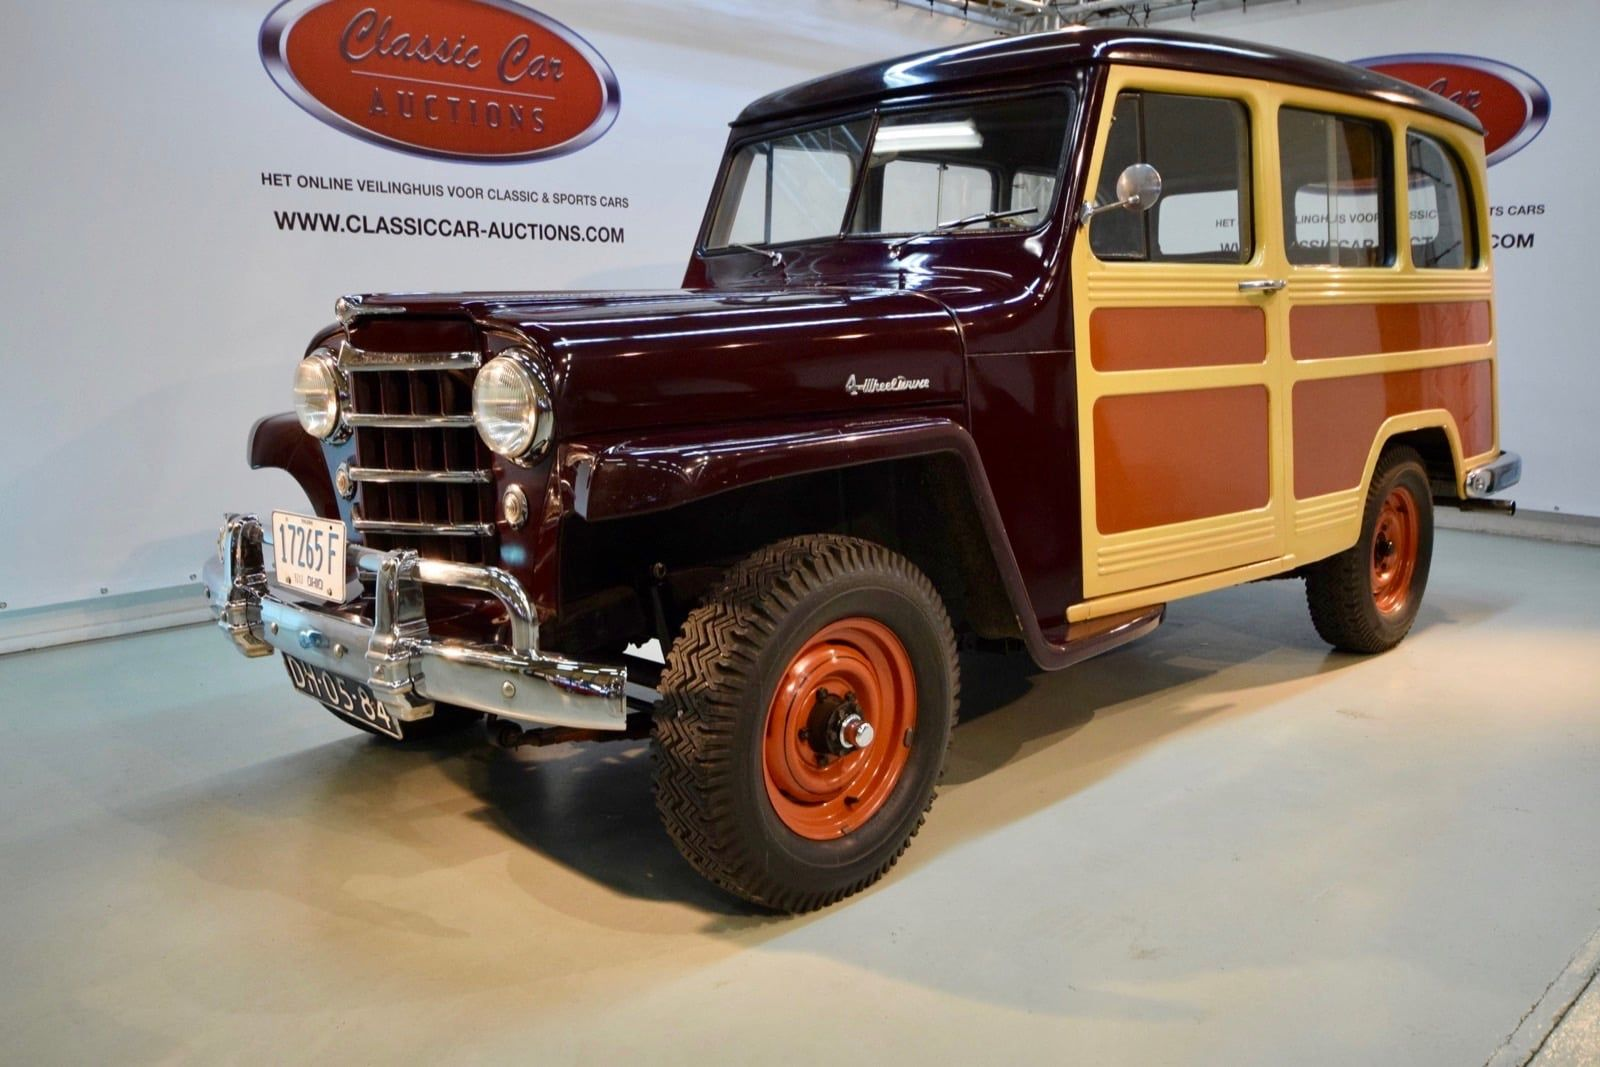 Jeep Willys Overland Station Wagon Woody Look 1951 Willys Jeep